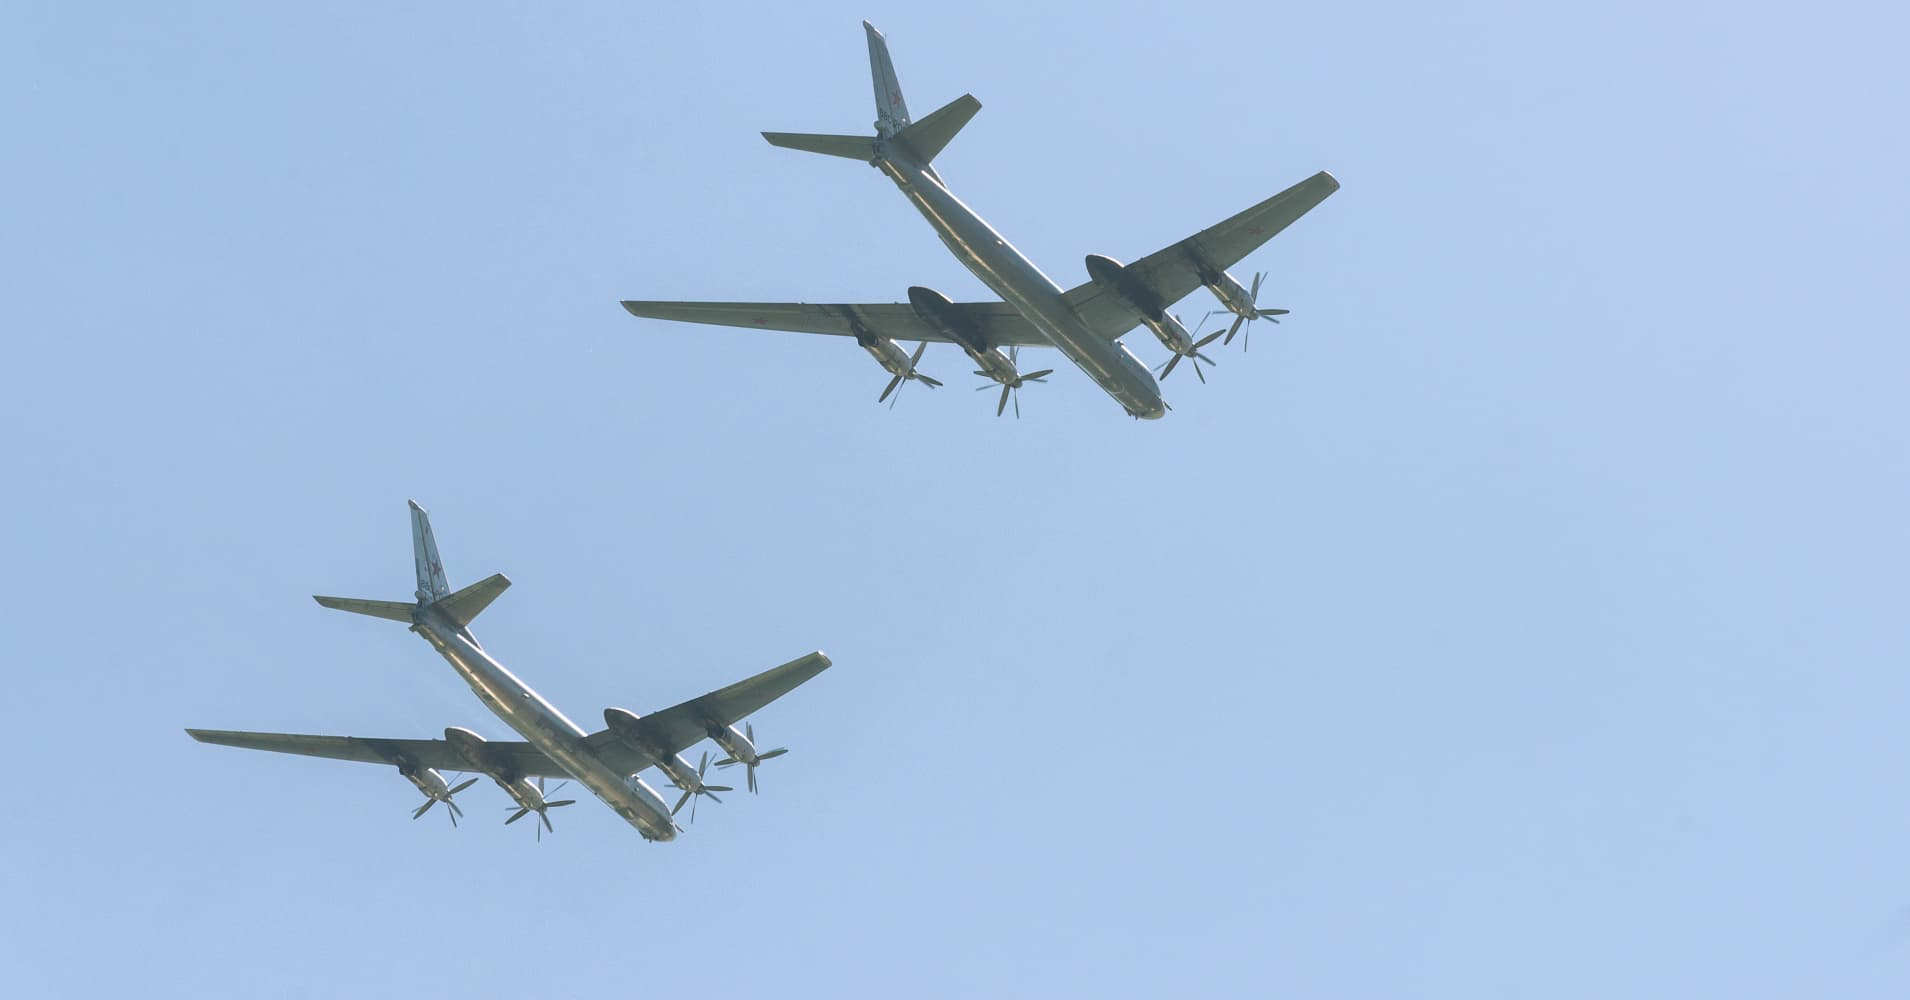 They're back: Russian bombers buzz Alaska, again